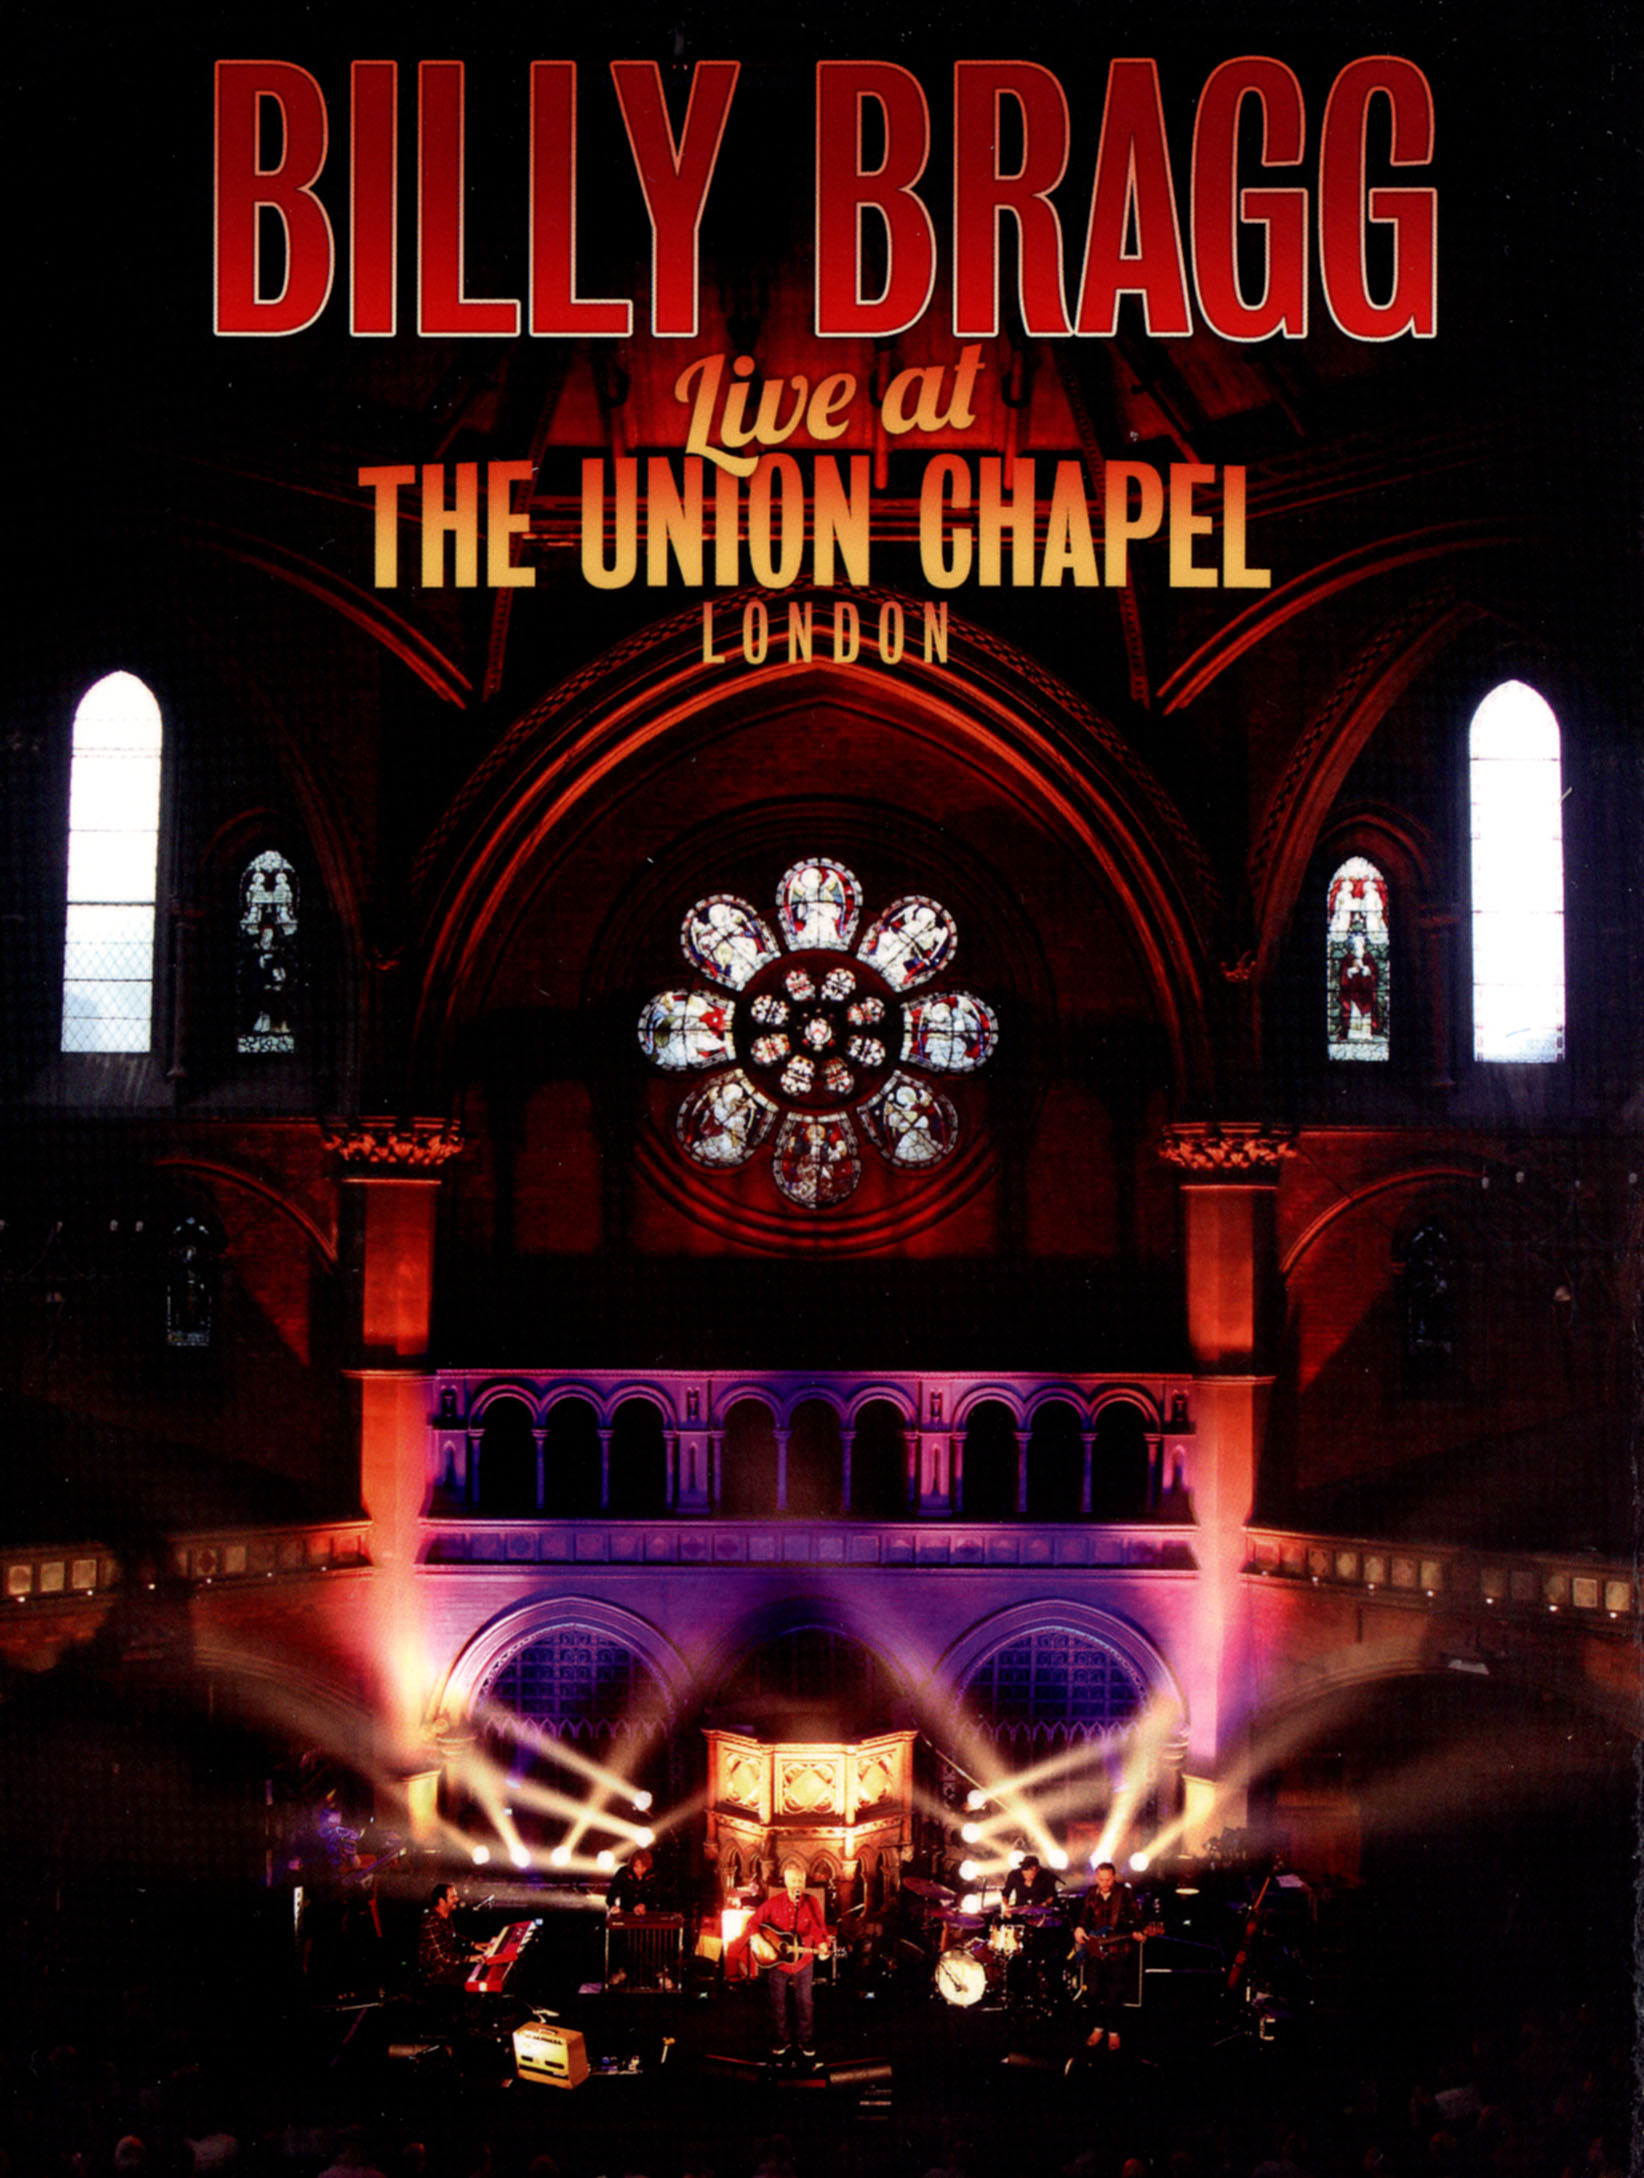 Billy Bragg: Live at the Union Chapel, London